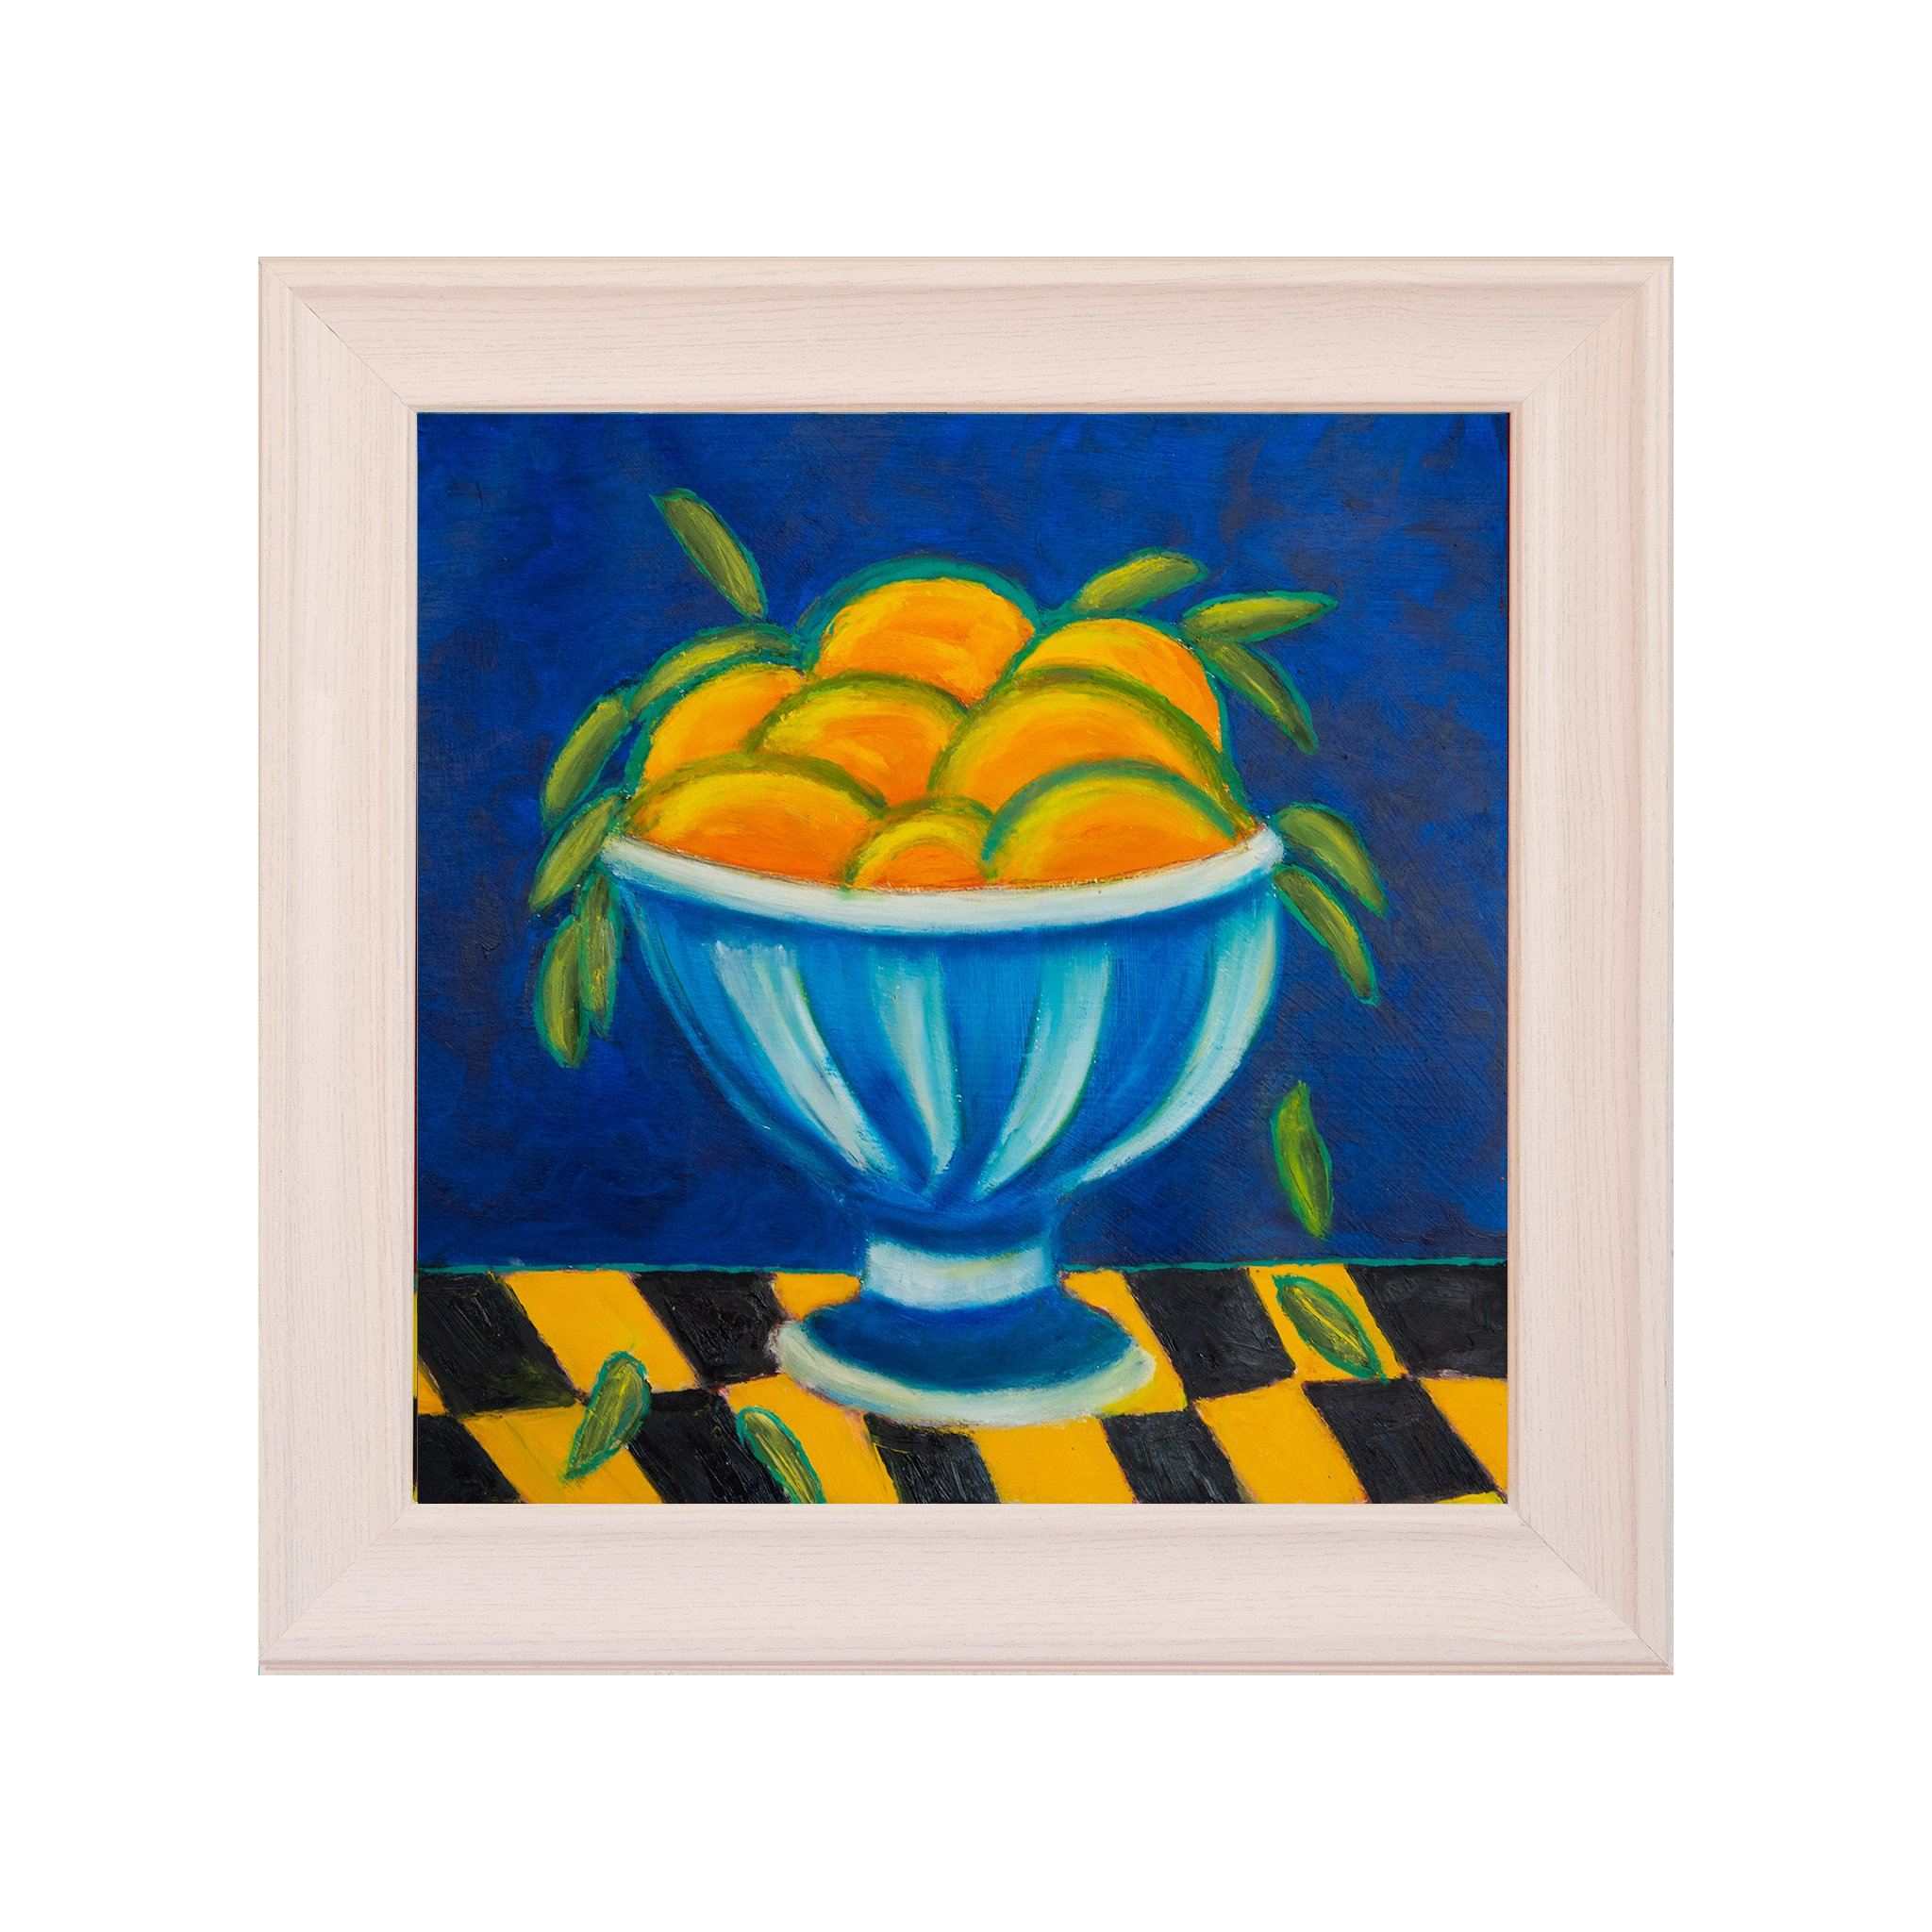 ART IN THE TIME OF CORONA: ORANGES IN A BOWL - Norlynne Coar Fine Art